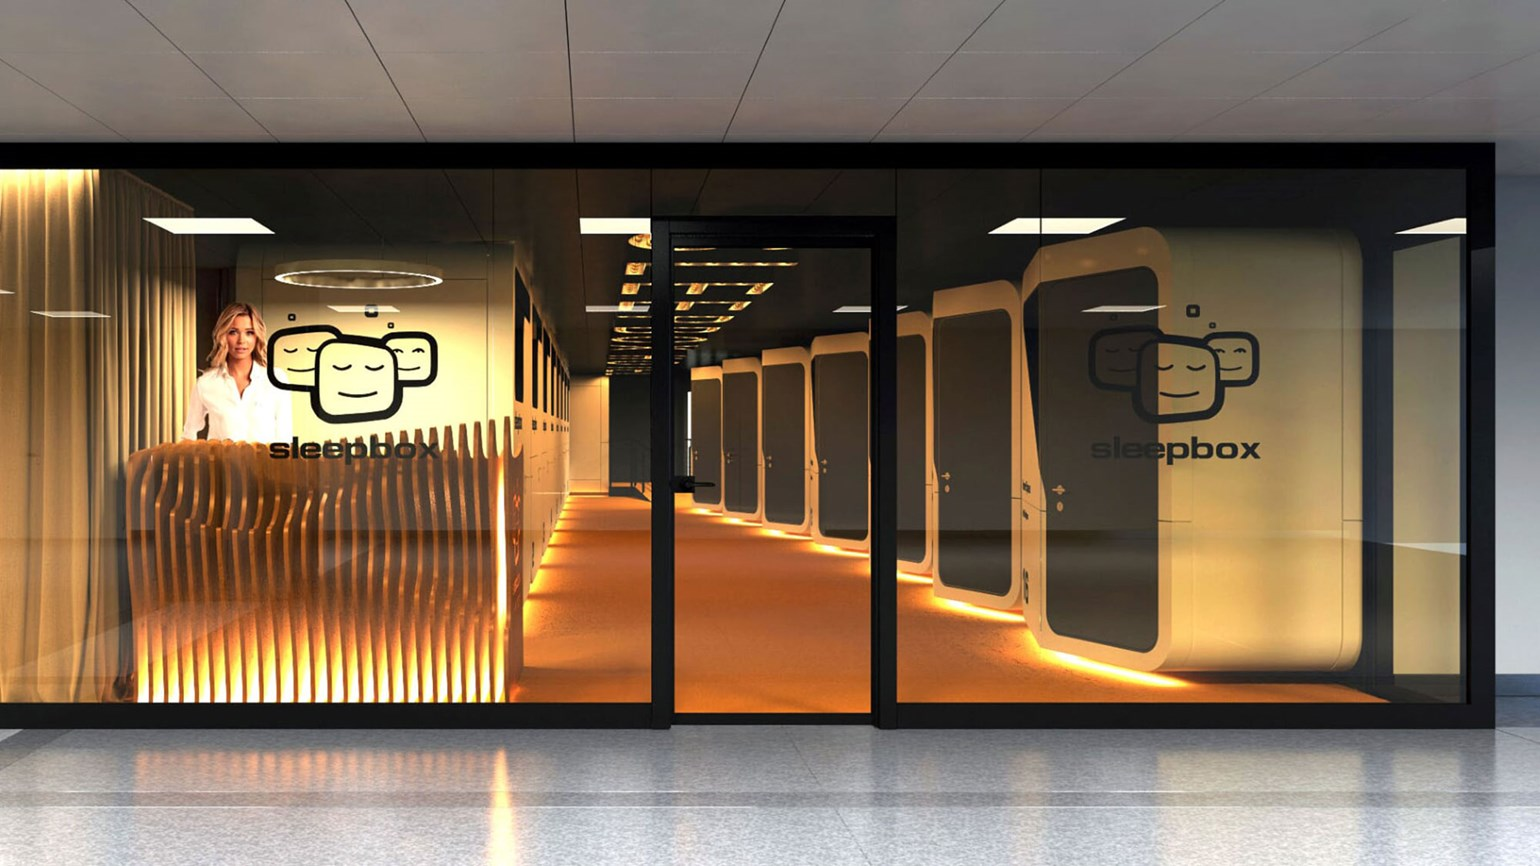 Startup firm Sleepbox opening pod hotel at Washington Dulles